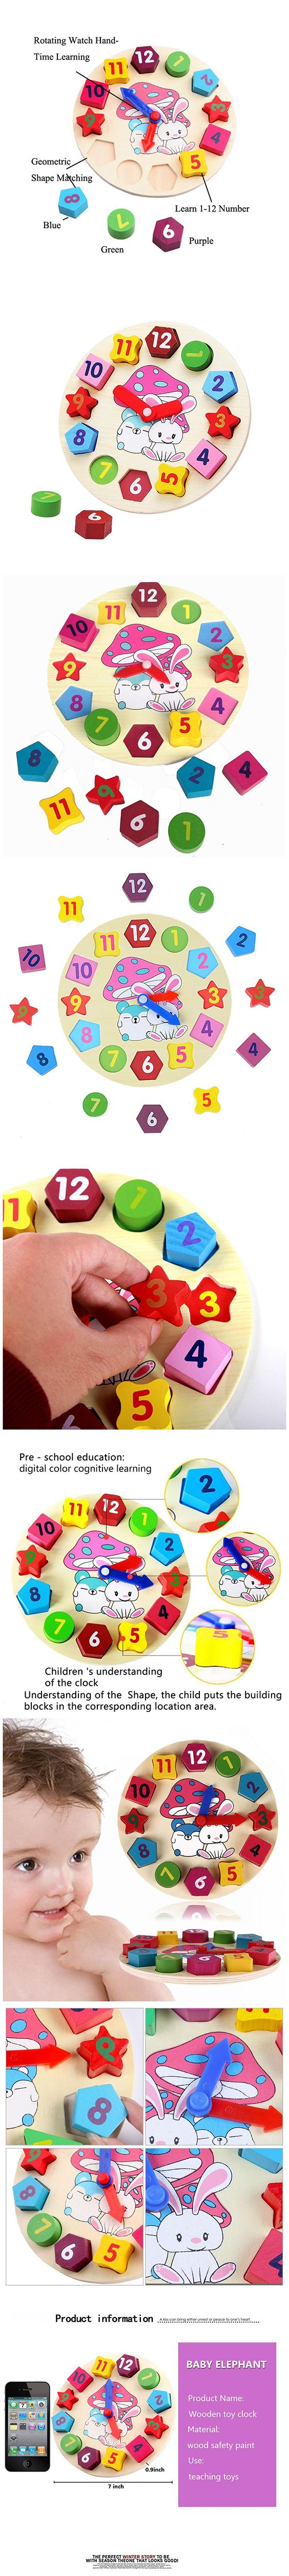 Wooden Blocks Toys Digital Geometry Clock Baby Kids Early Education Puzzle Set Children'S Educational Toy For Baby Boy And Girl Gift